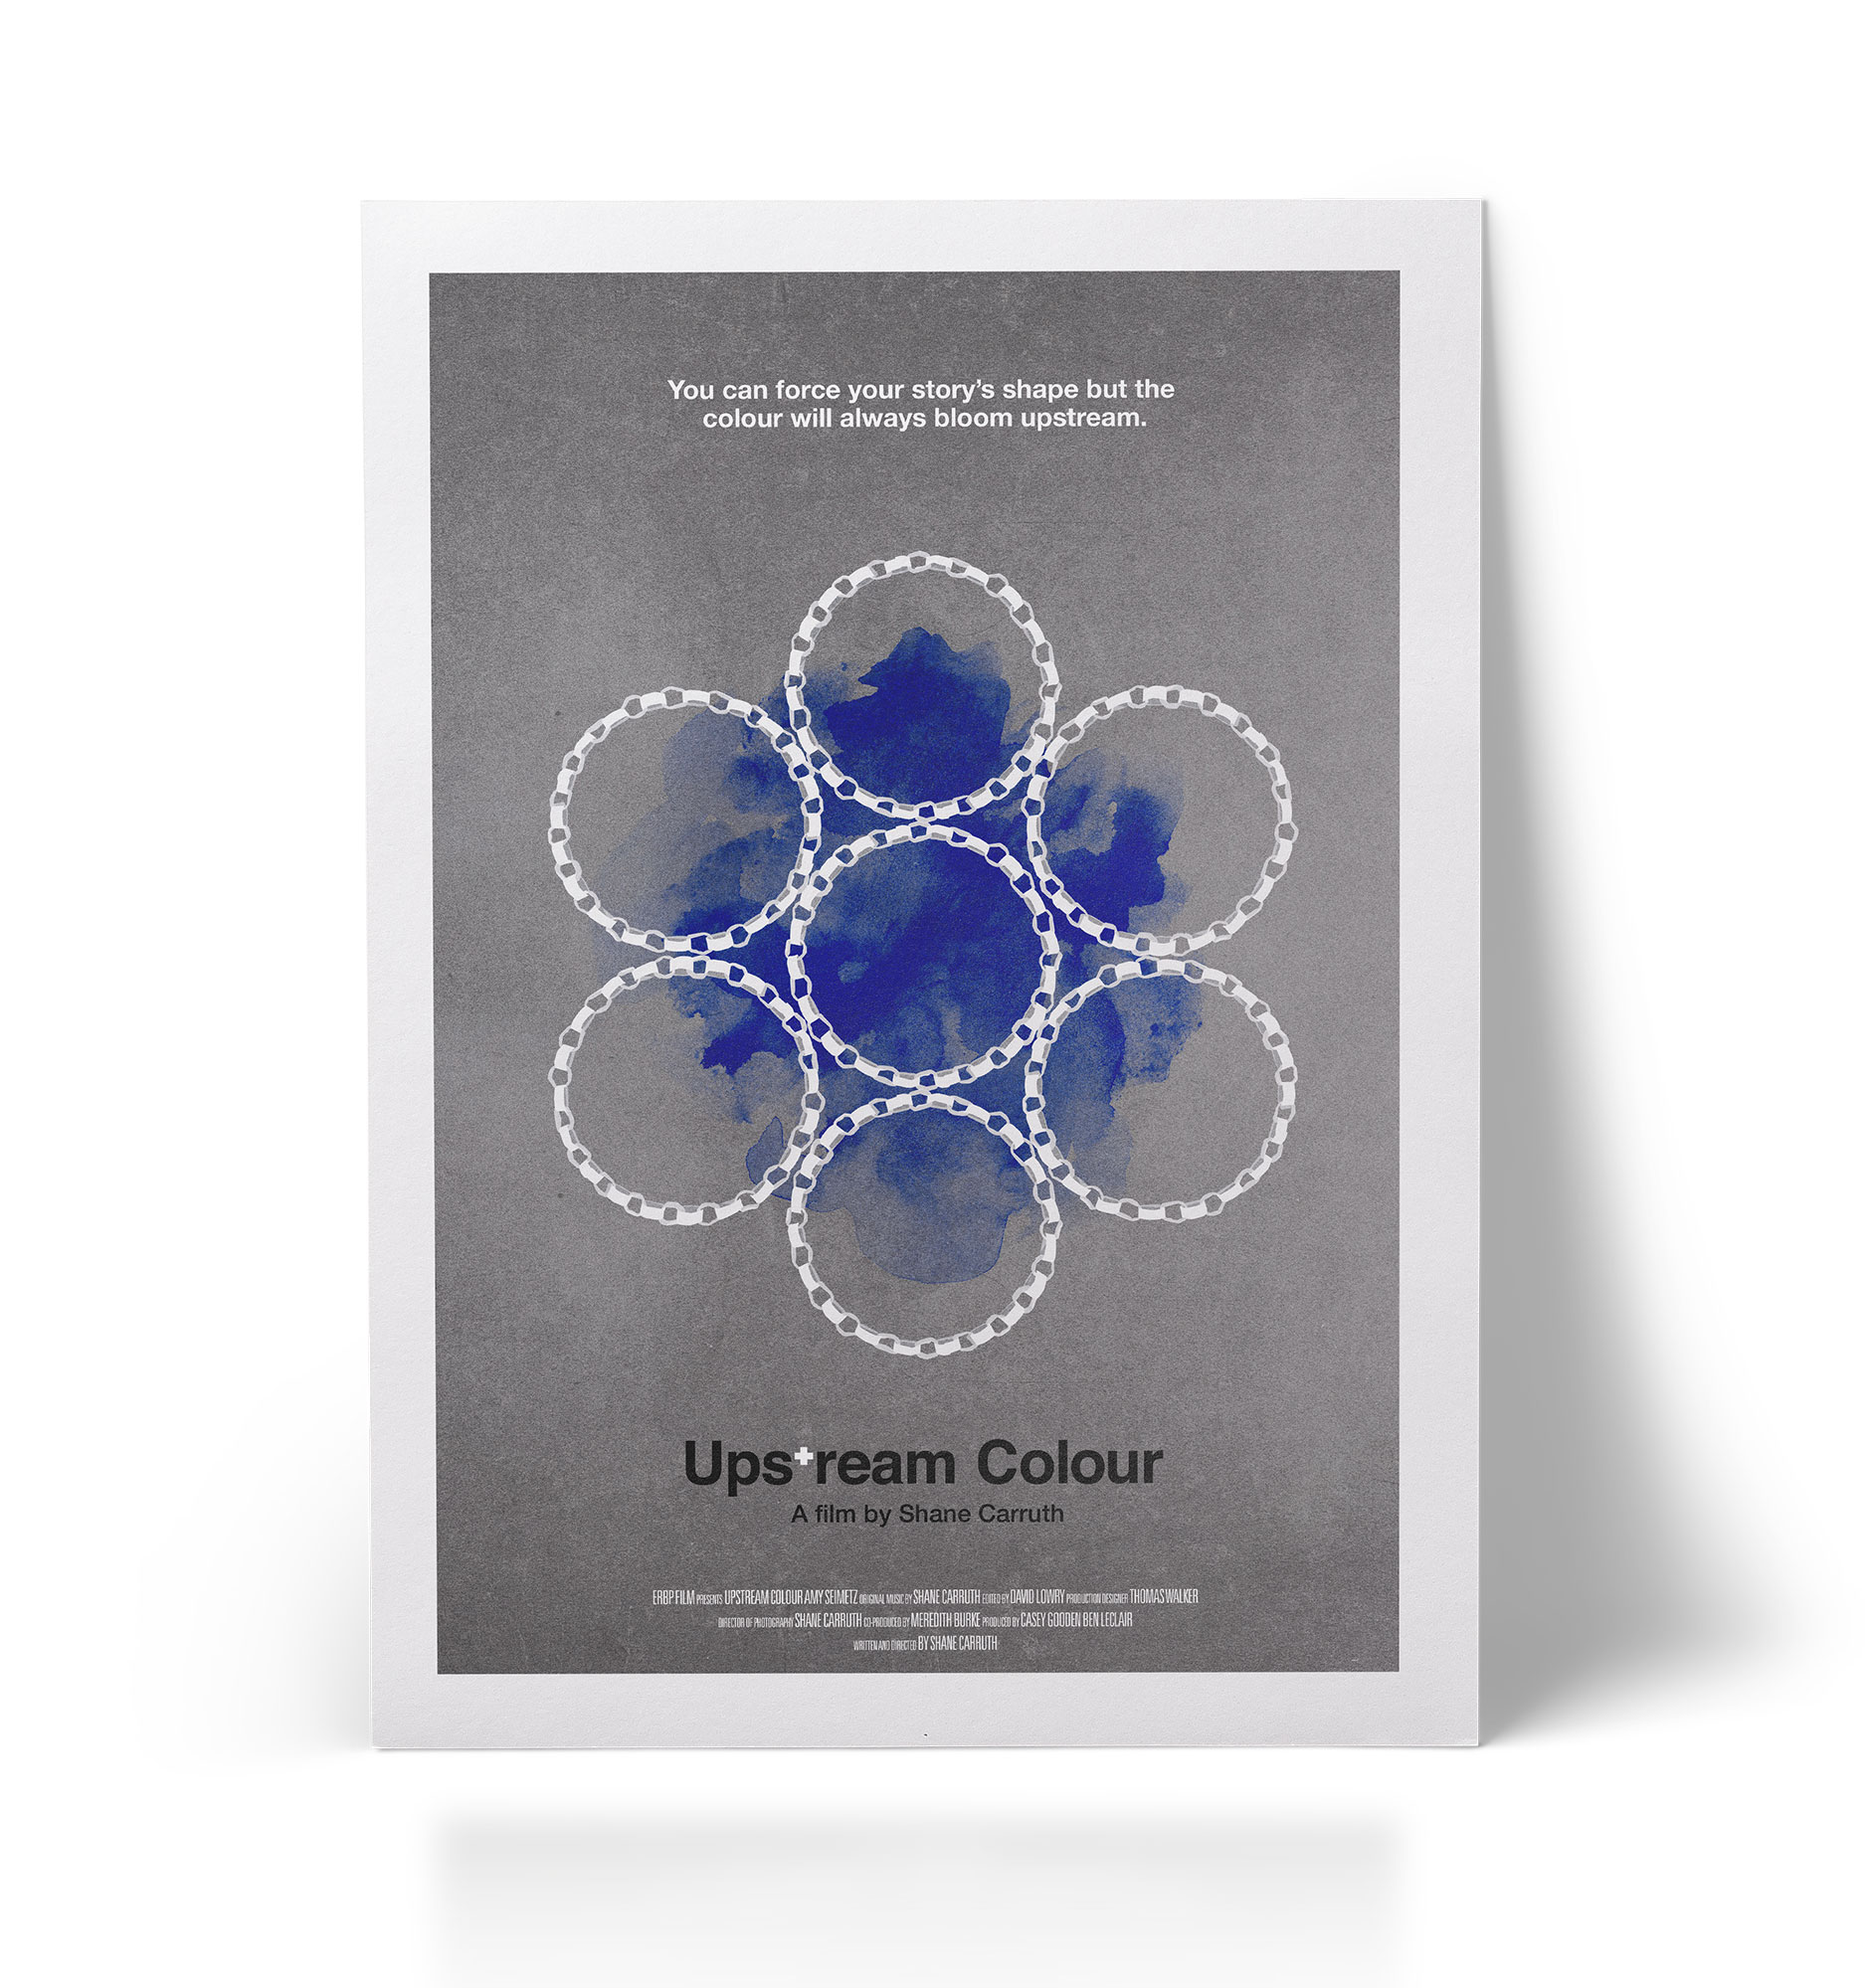 img_upstreamcolour_poster3.jpg